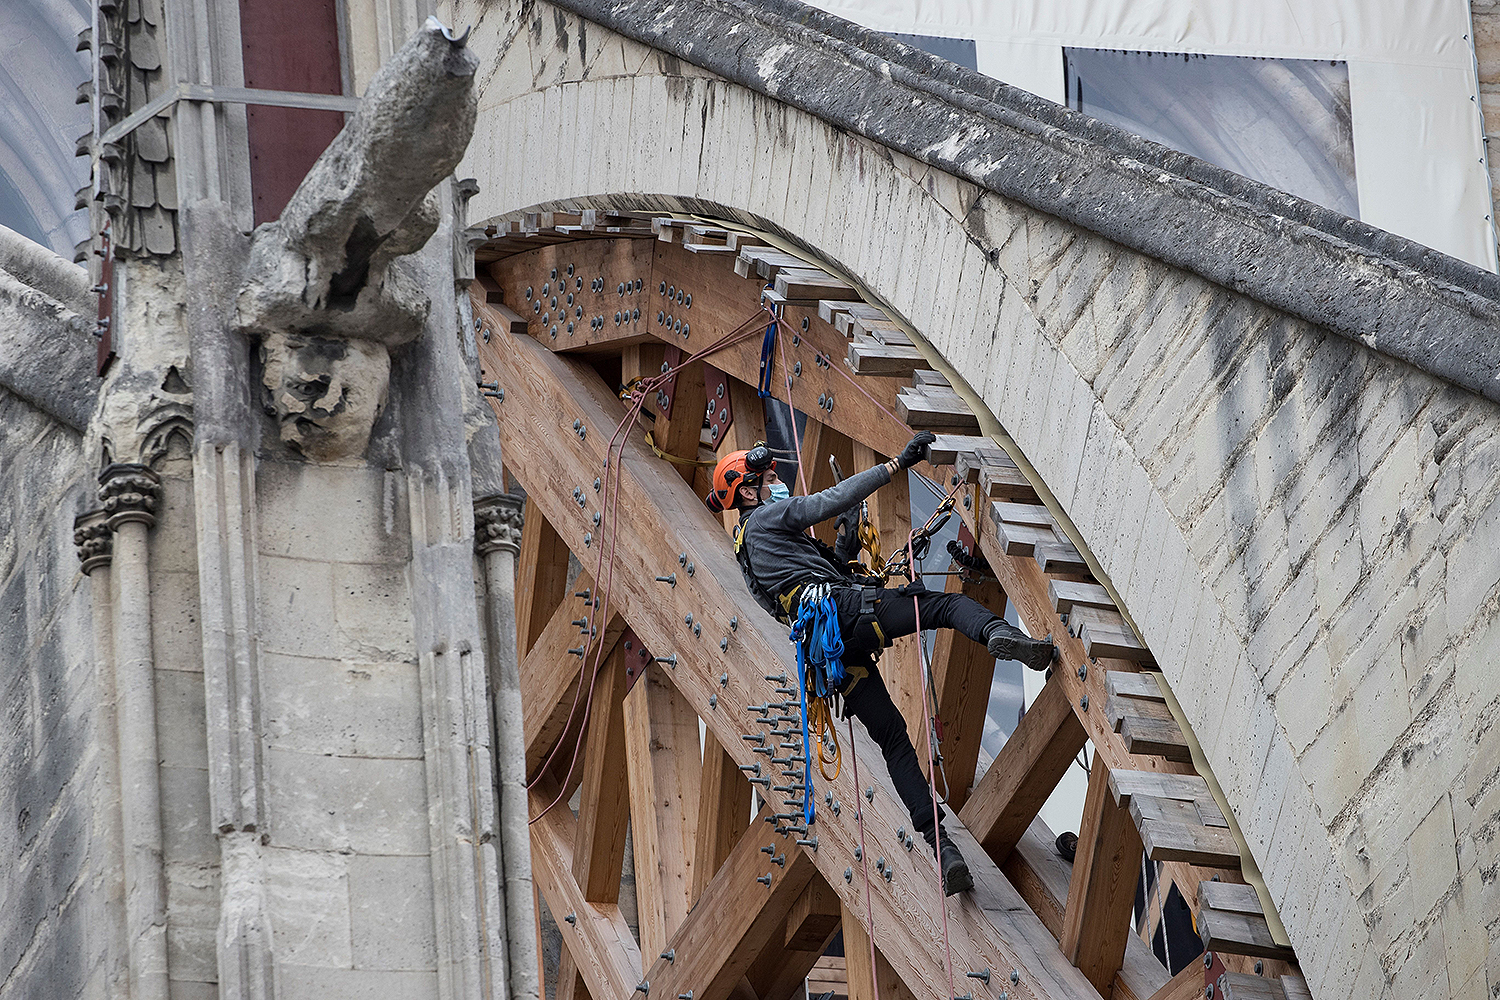 A man works on a wooden consolidation of a flying buttress at Notre Dame Cathedral in Paris on June 9 as crews begin the delicate task of removing tons of metal scaffolding that melted together during last year's fire—one of the riskiest operations in the rebuilding effort so far. THOMAS SAMSON/AFP via Getty Images